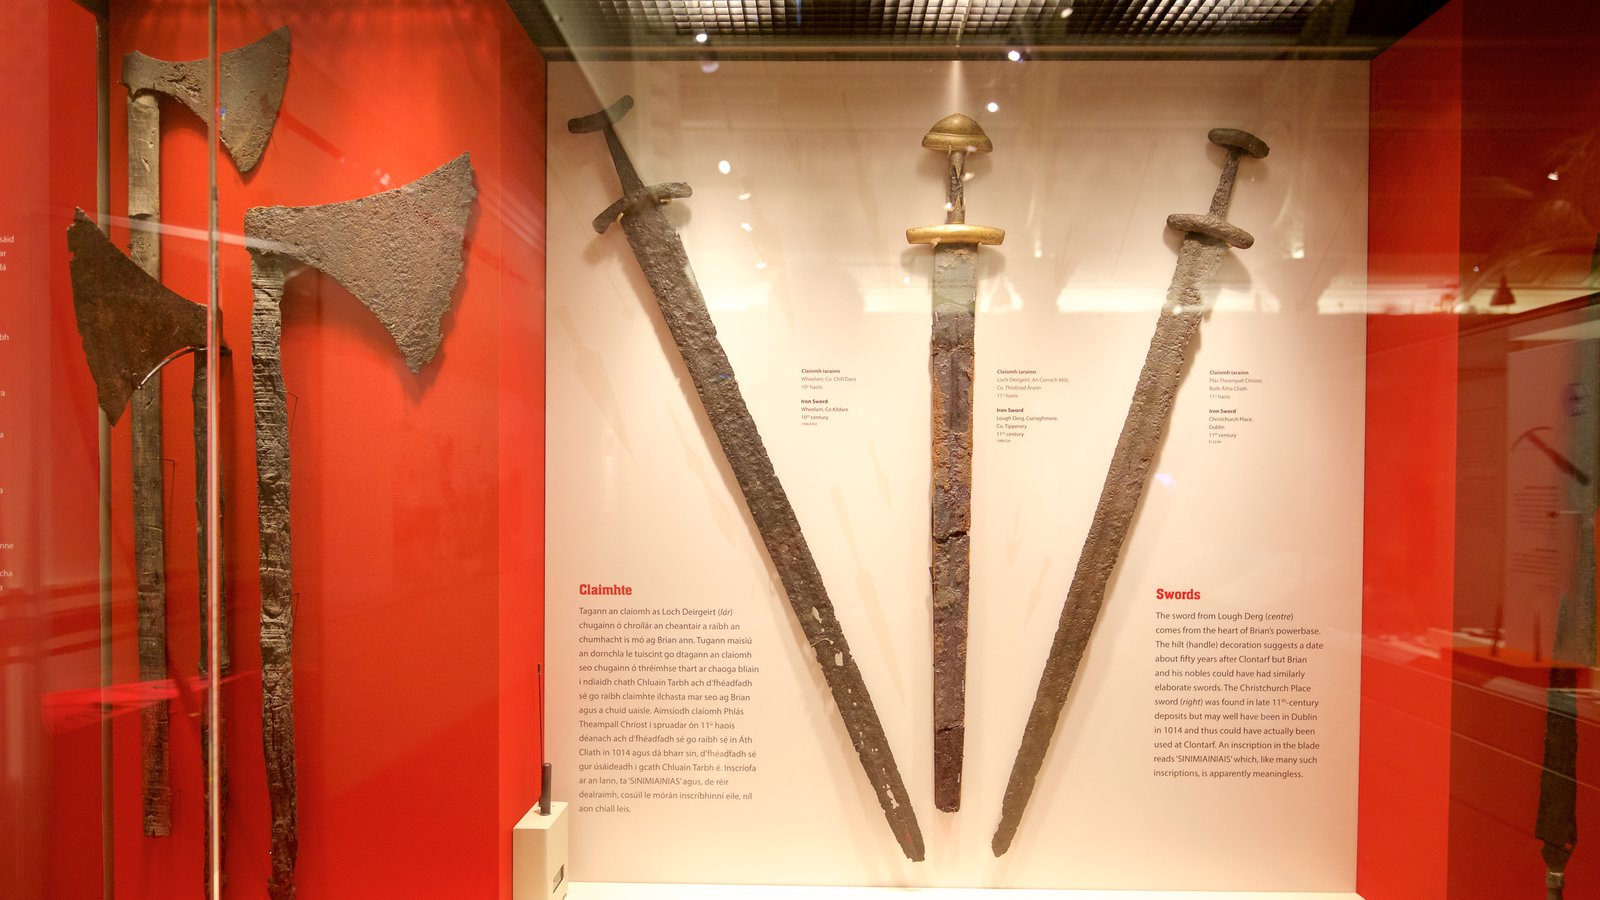 National Museum of Ireland - Archaeology and History showing interior views and military items